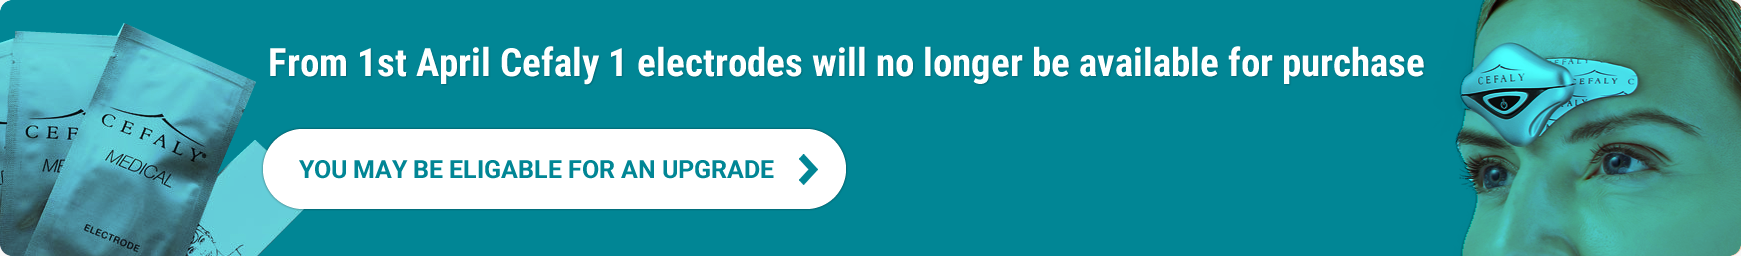 From 1st April Cefaly 1 electrodes will no longer be available for purchase